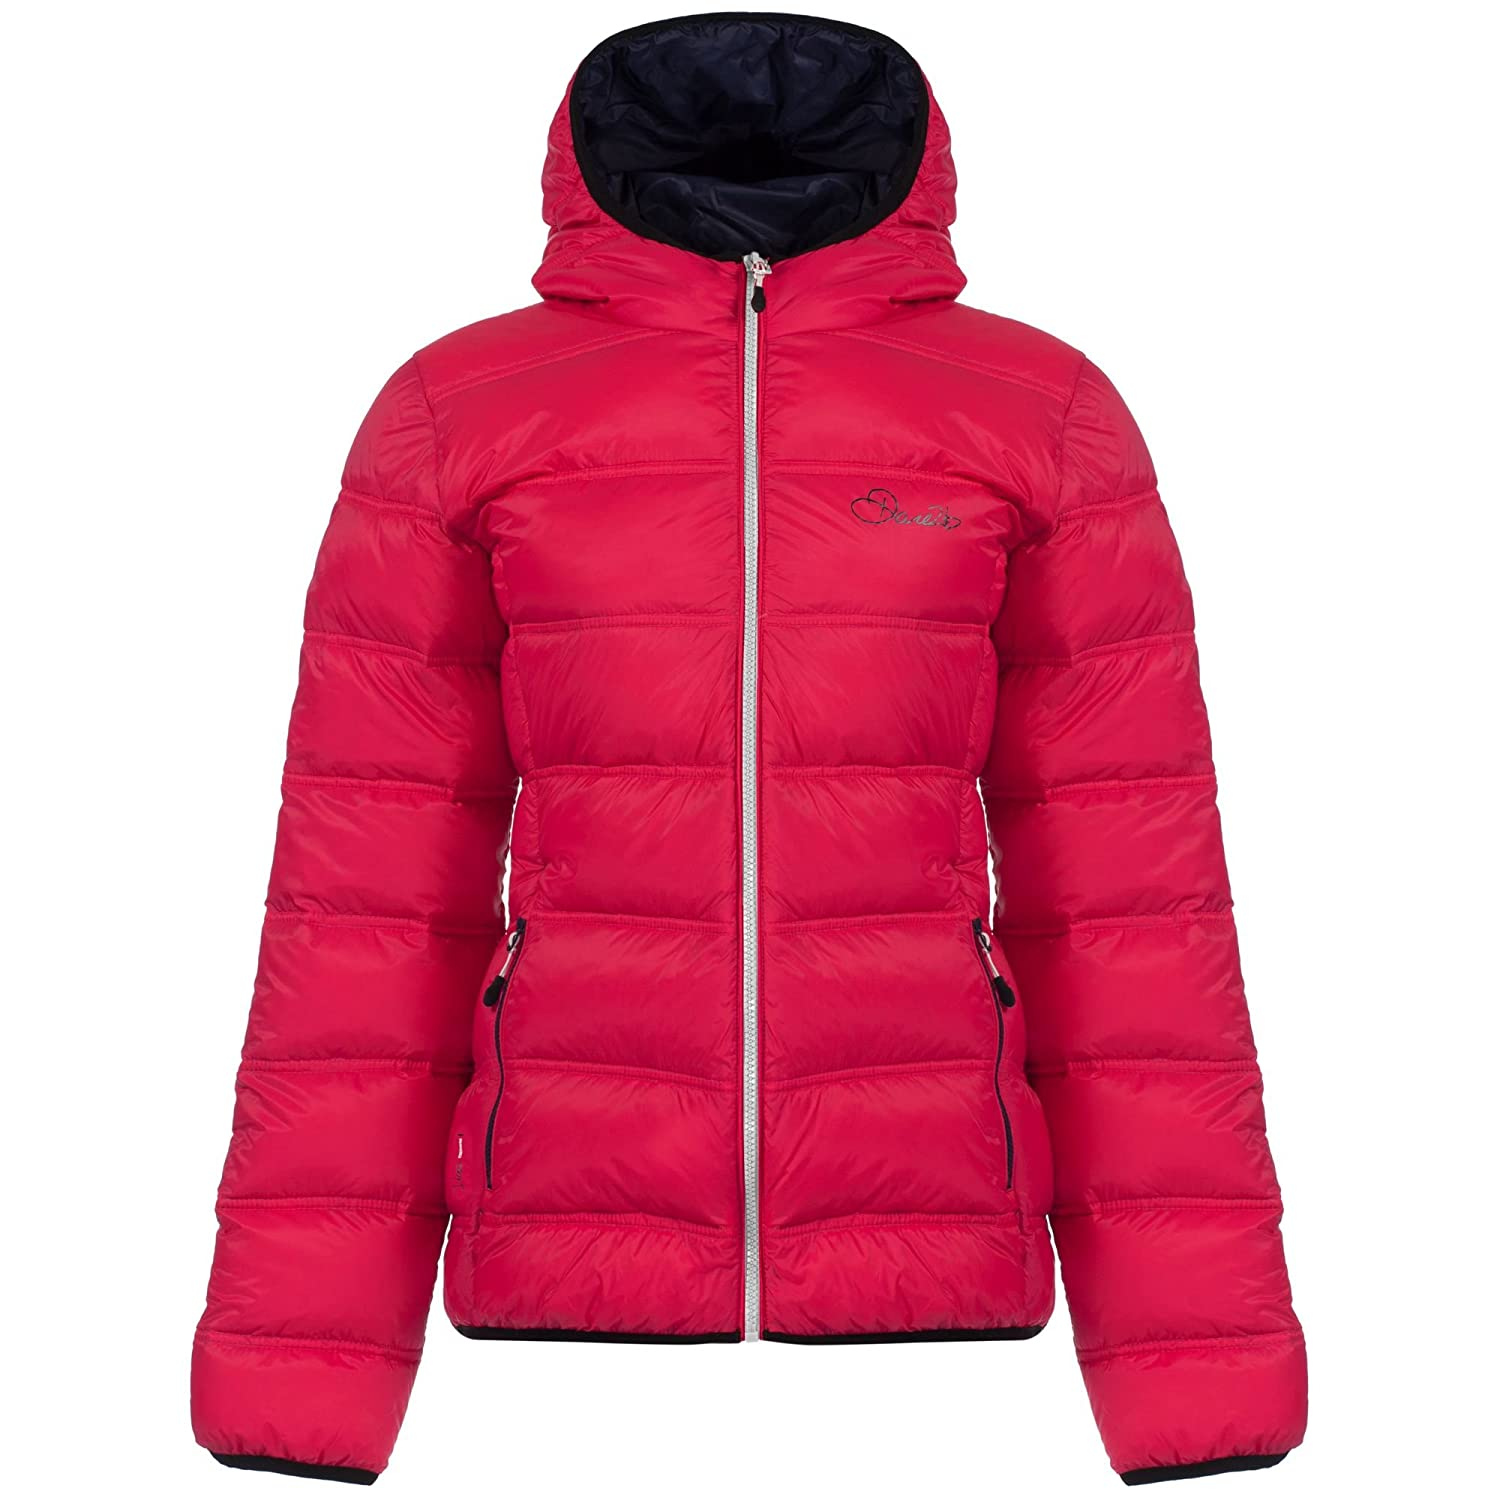 Dare 2b Women's Lowdown Down Jacket: Dare2b: Amazon.co.uk: Clothing